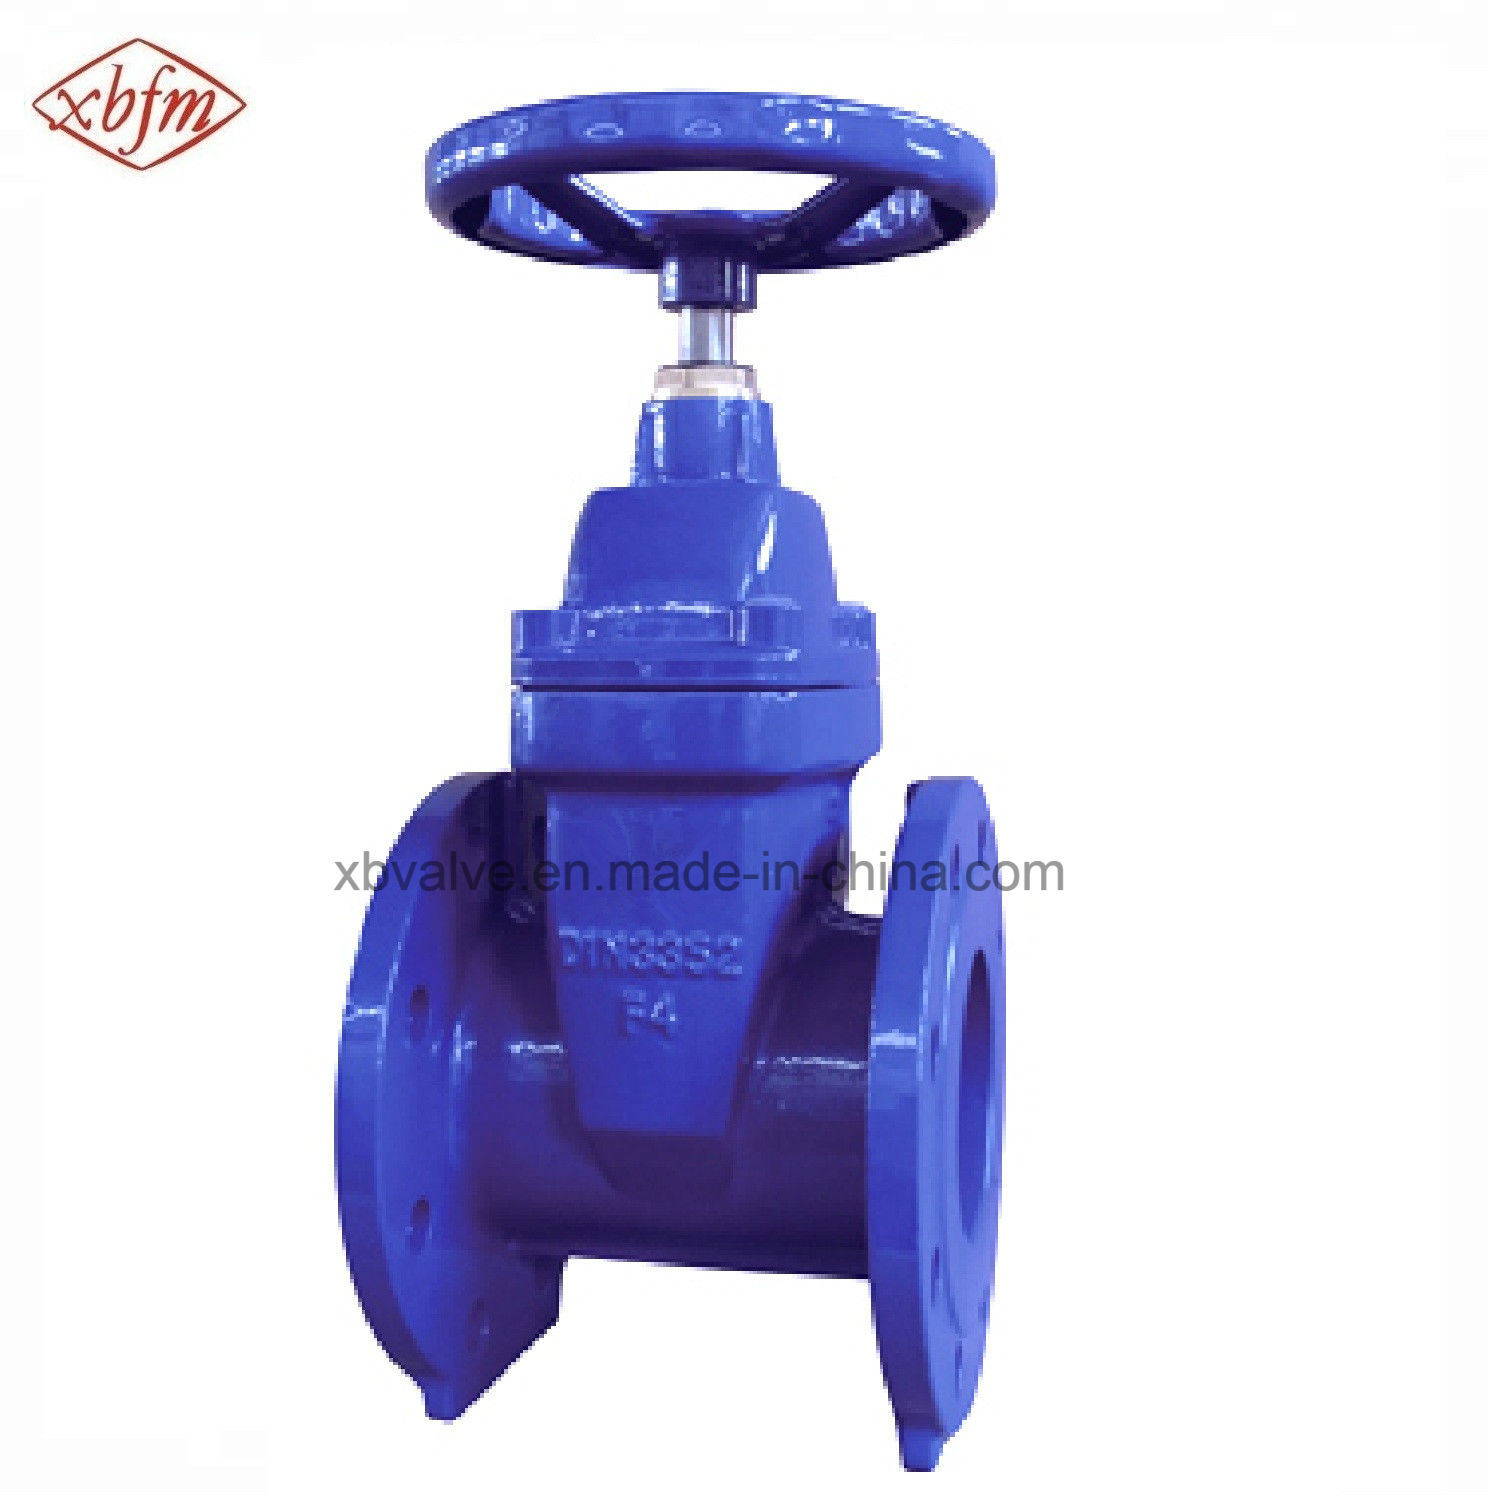 DIN3352-F4 Non-Rising Stem Resilient Soft Seat Gate Valve pictures & photos